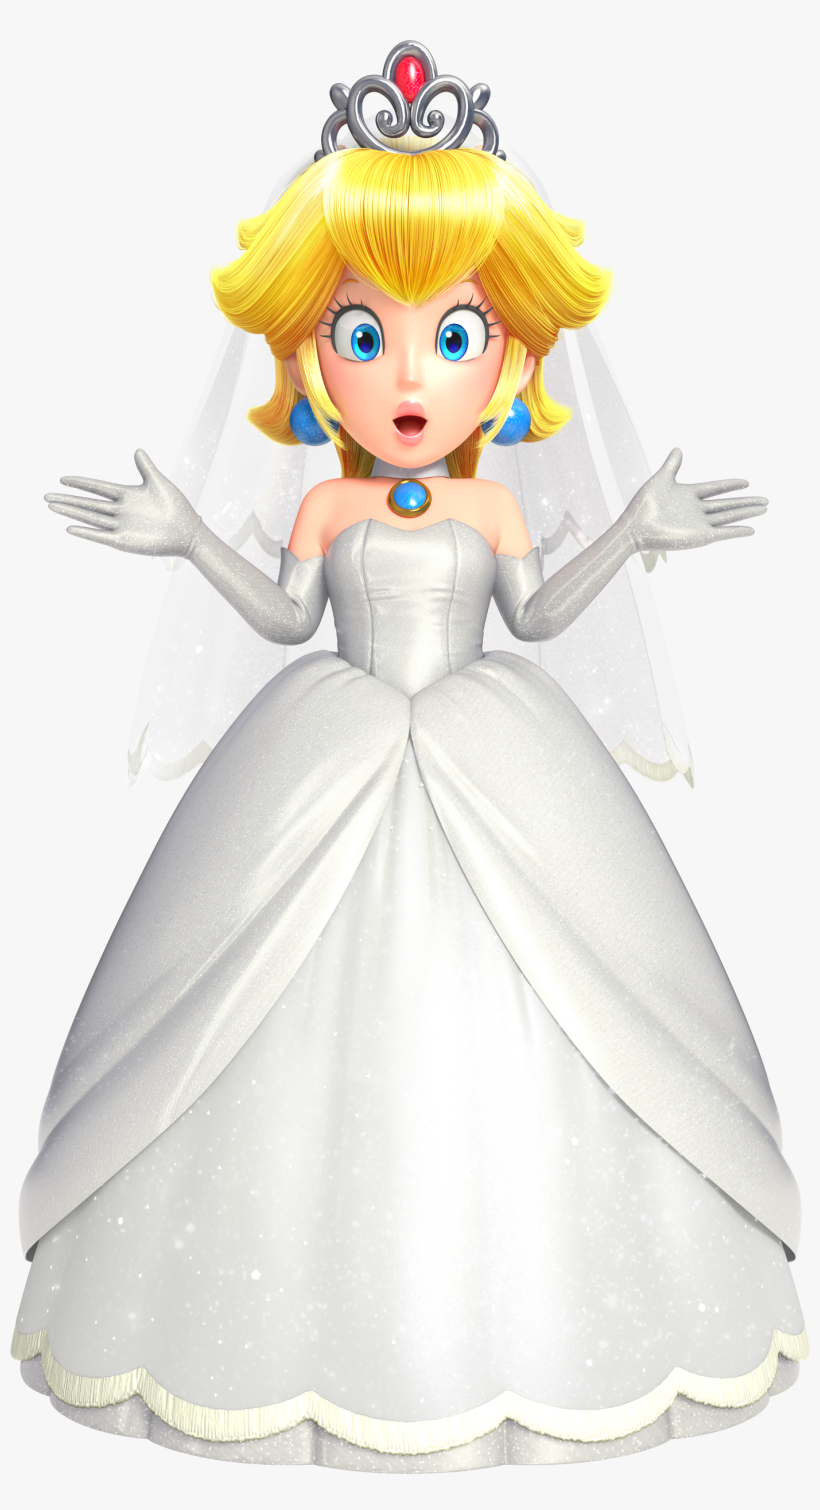 Wedding Peach Amiibo Super Mario Odyssey Peach Wedding Outfit 267x479 Png Download Pngkit